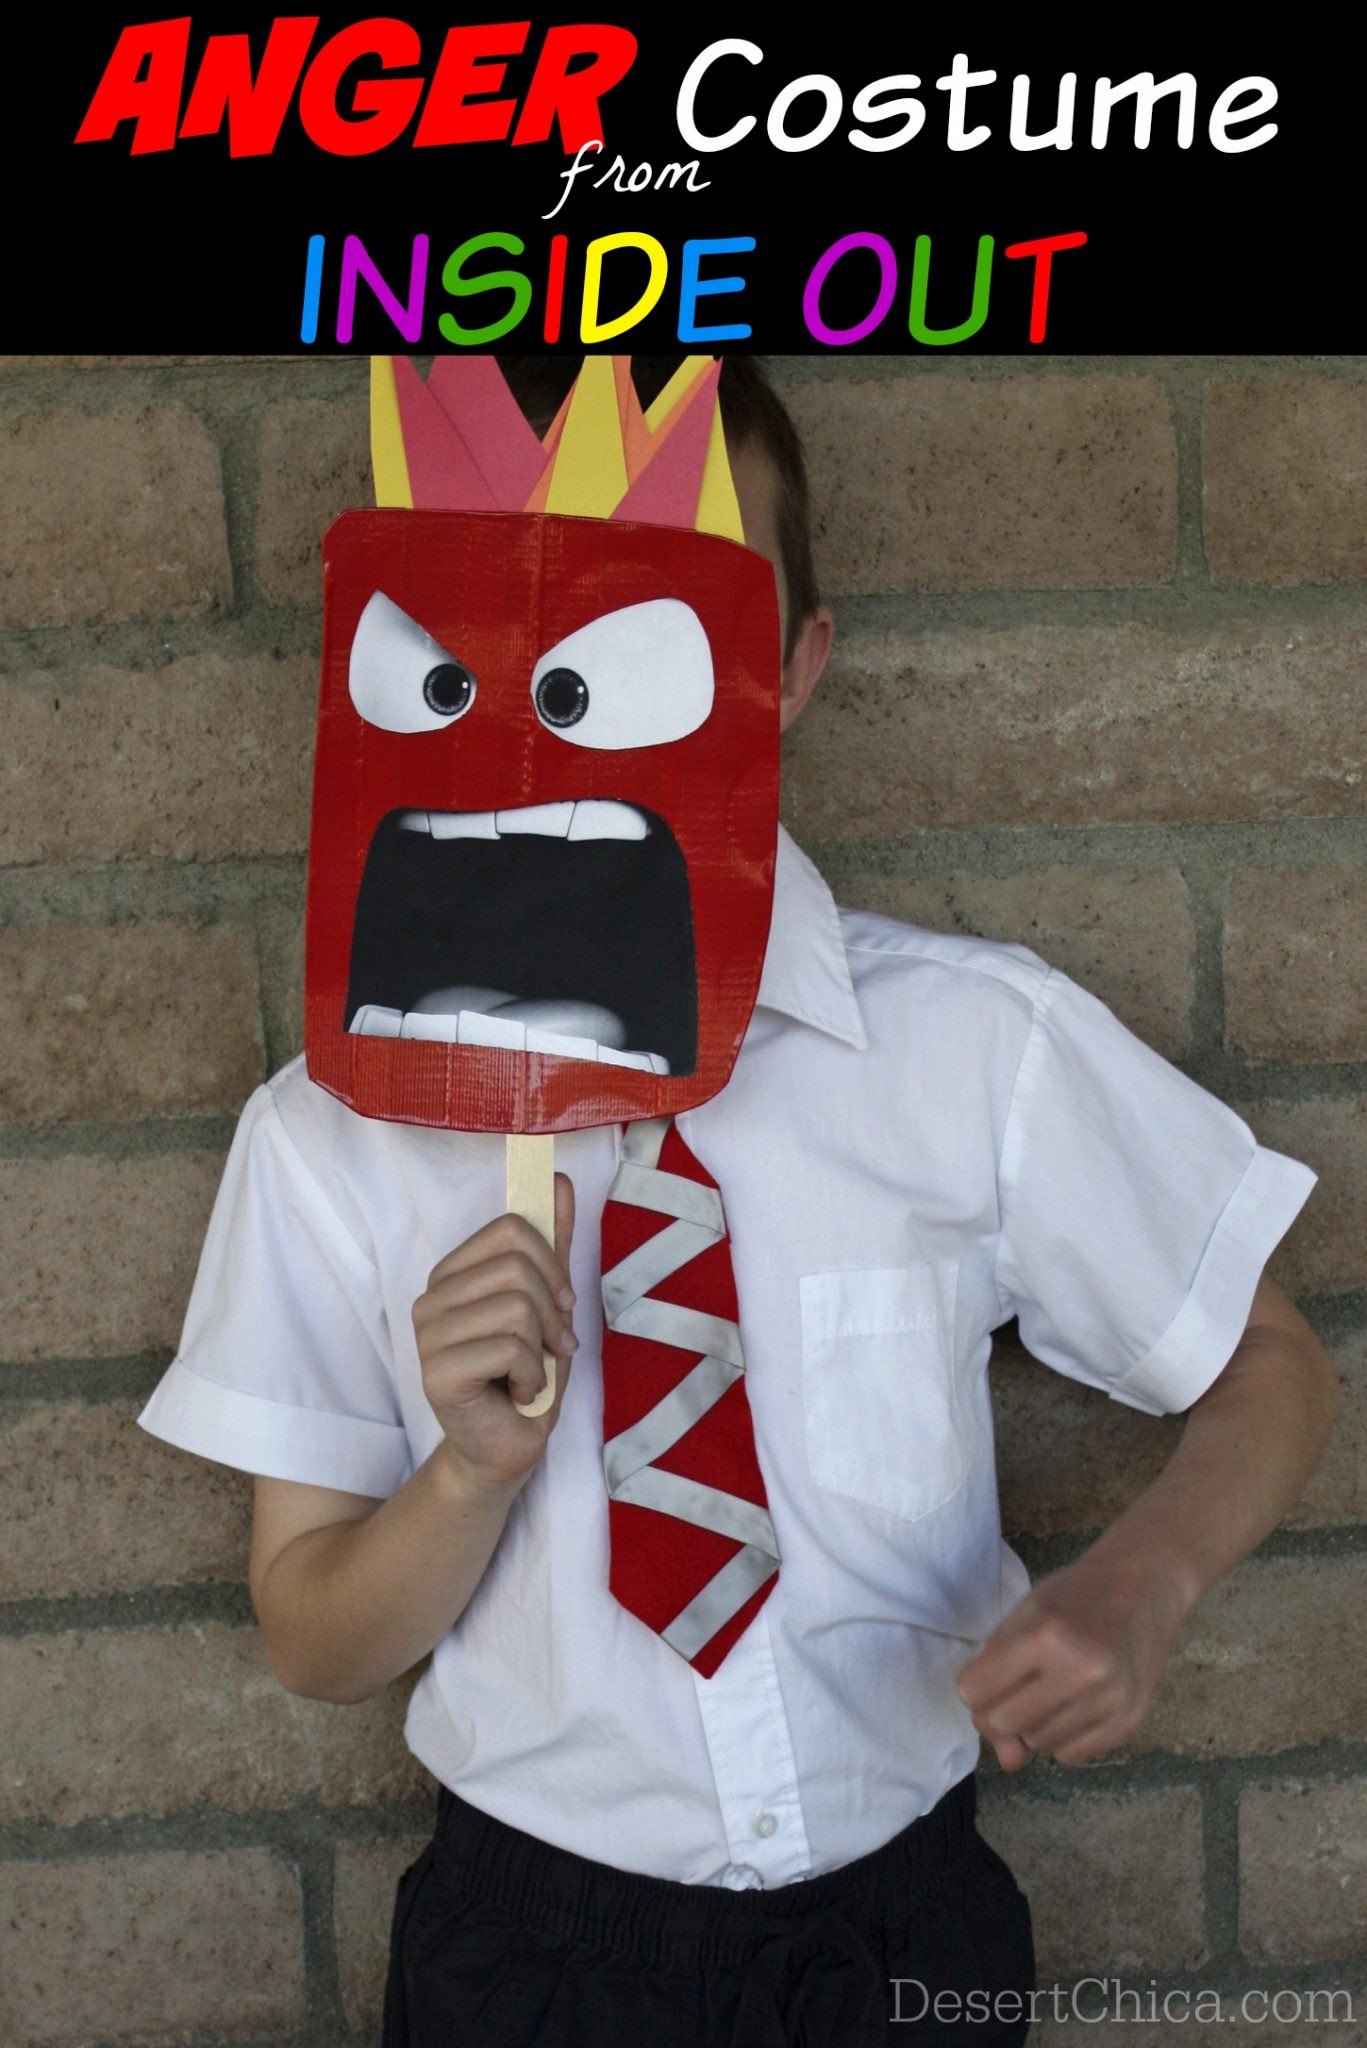 Best ideas about DIY Inside Out Costumes . Save or Pin DIY Anger from Inside Out Costume Now.